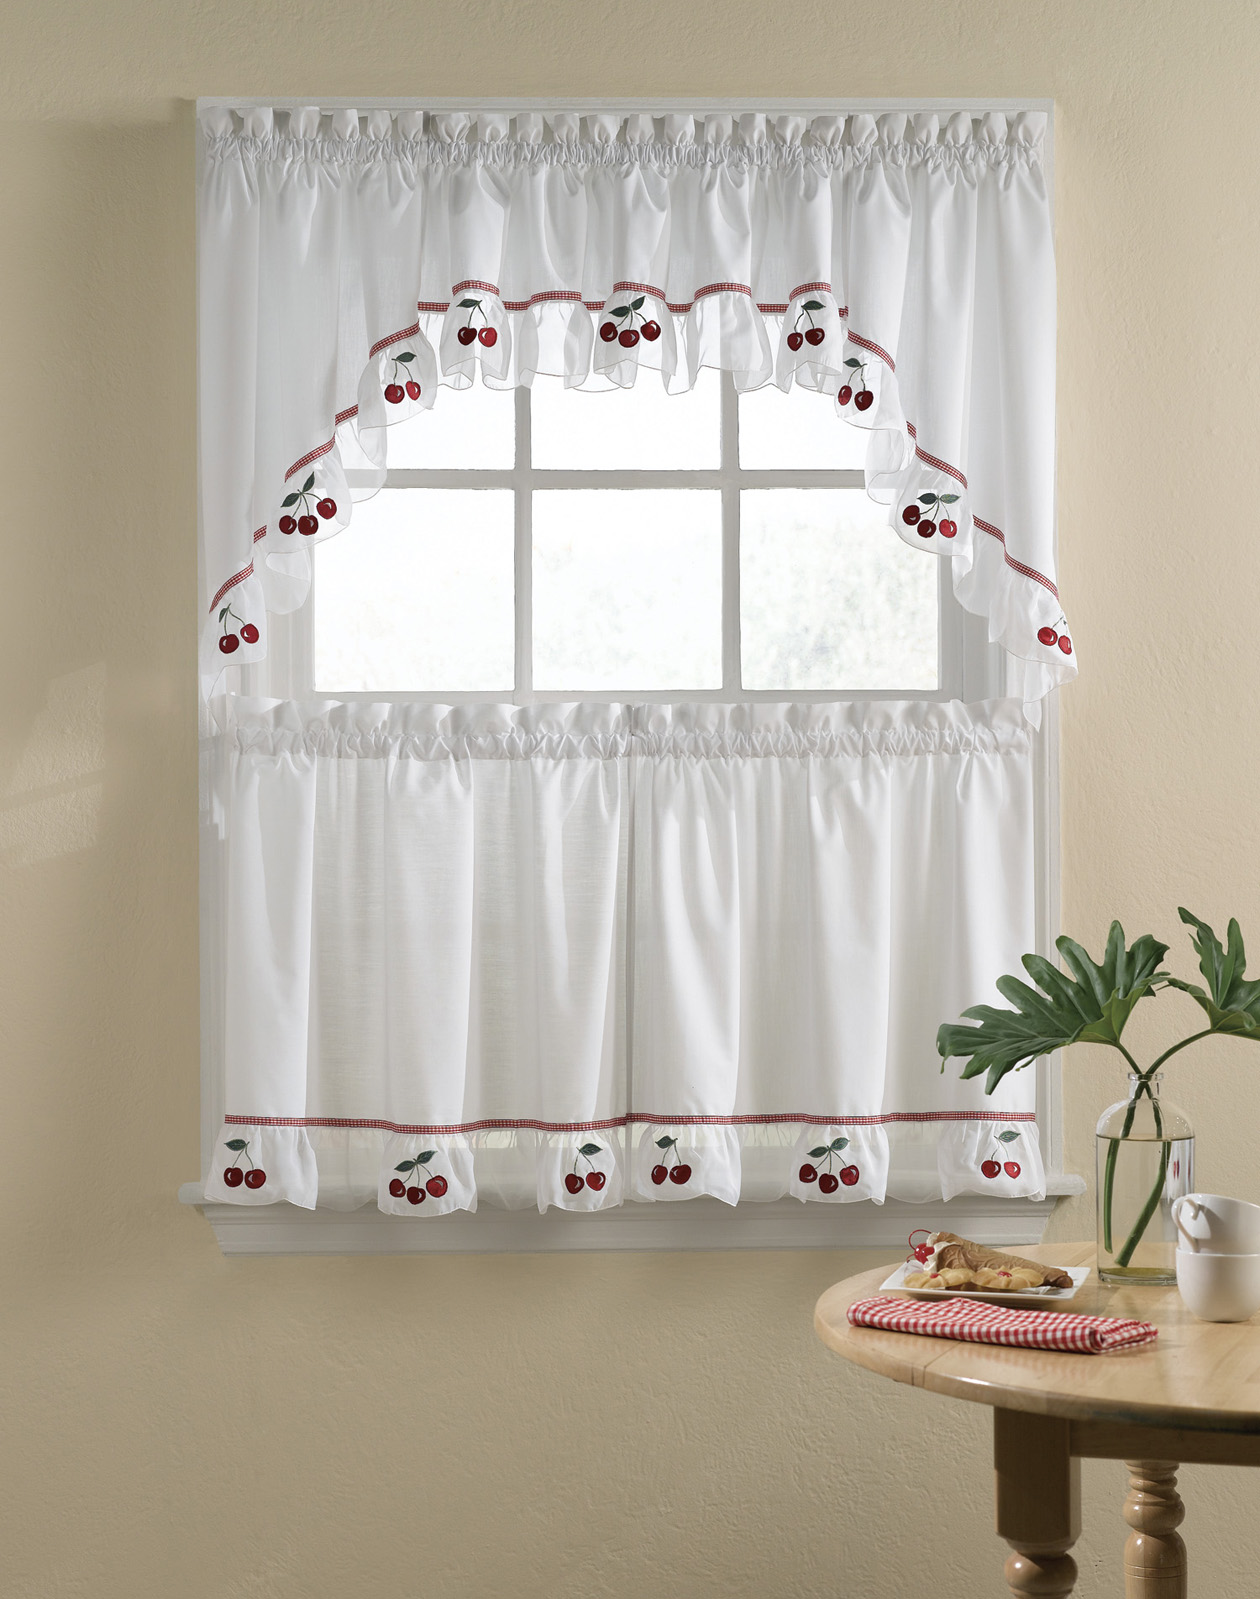 Grand Design Of White Fabric Kitchen Curtain Ideas With Cherry Accents